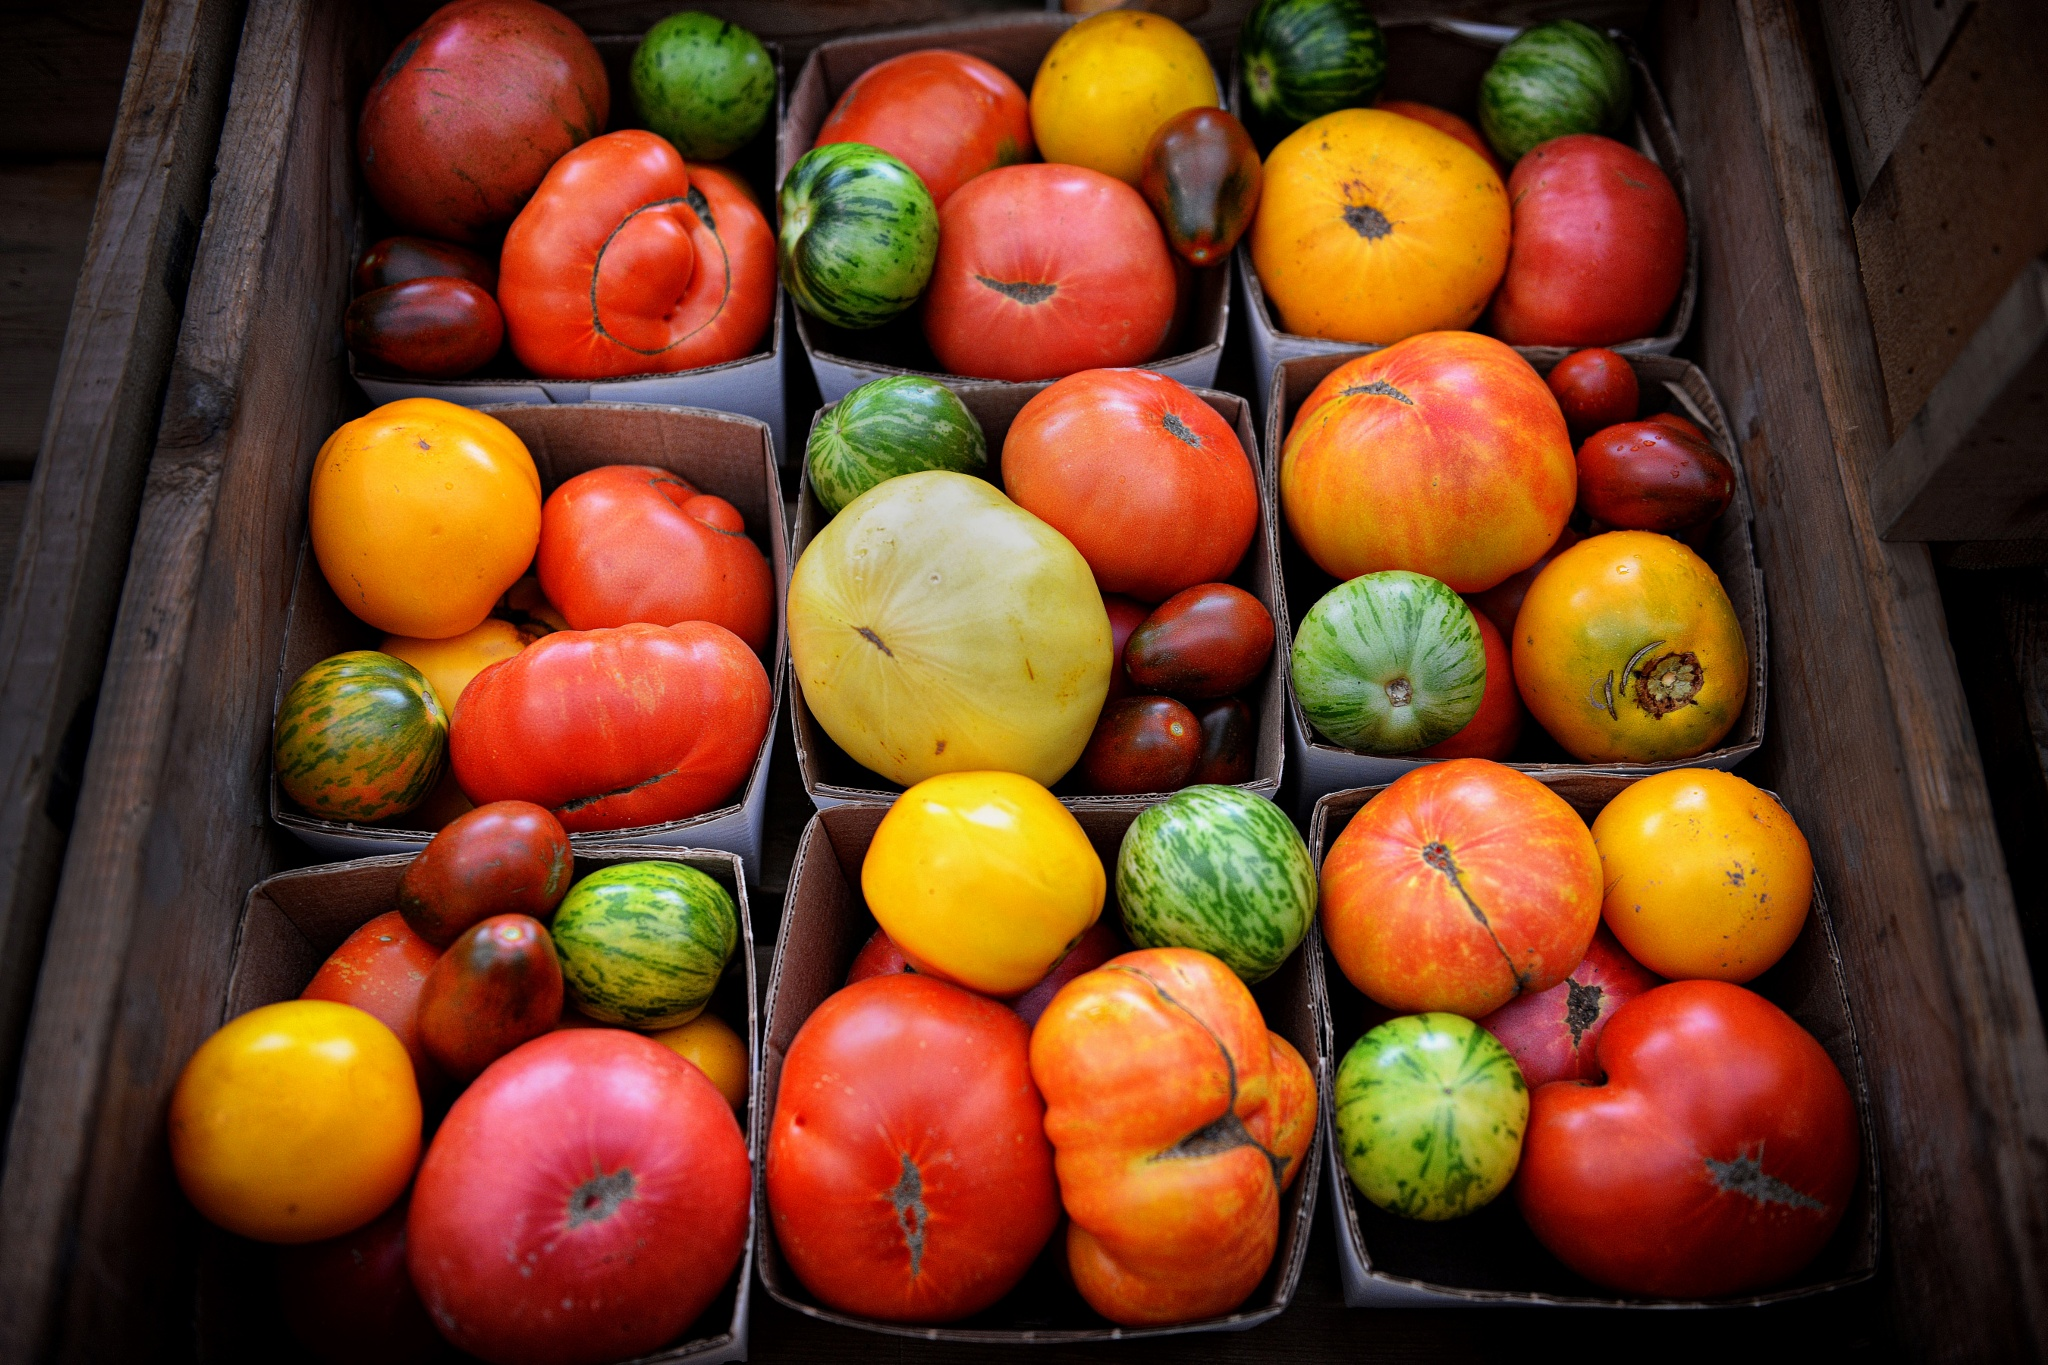 Tomatoes by Fotoguy